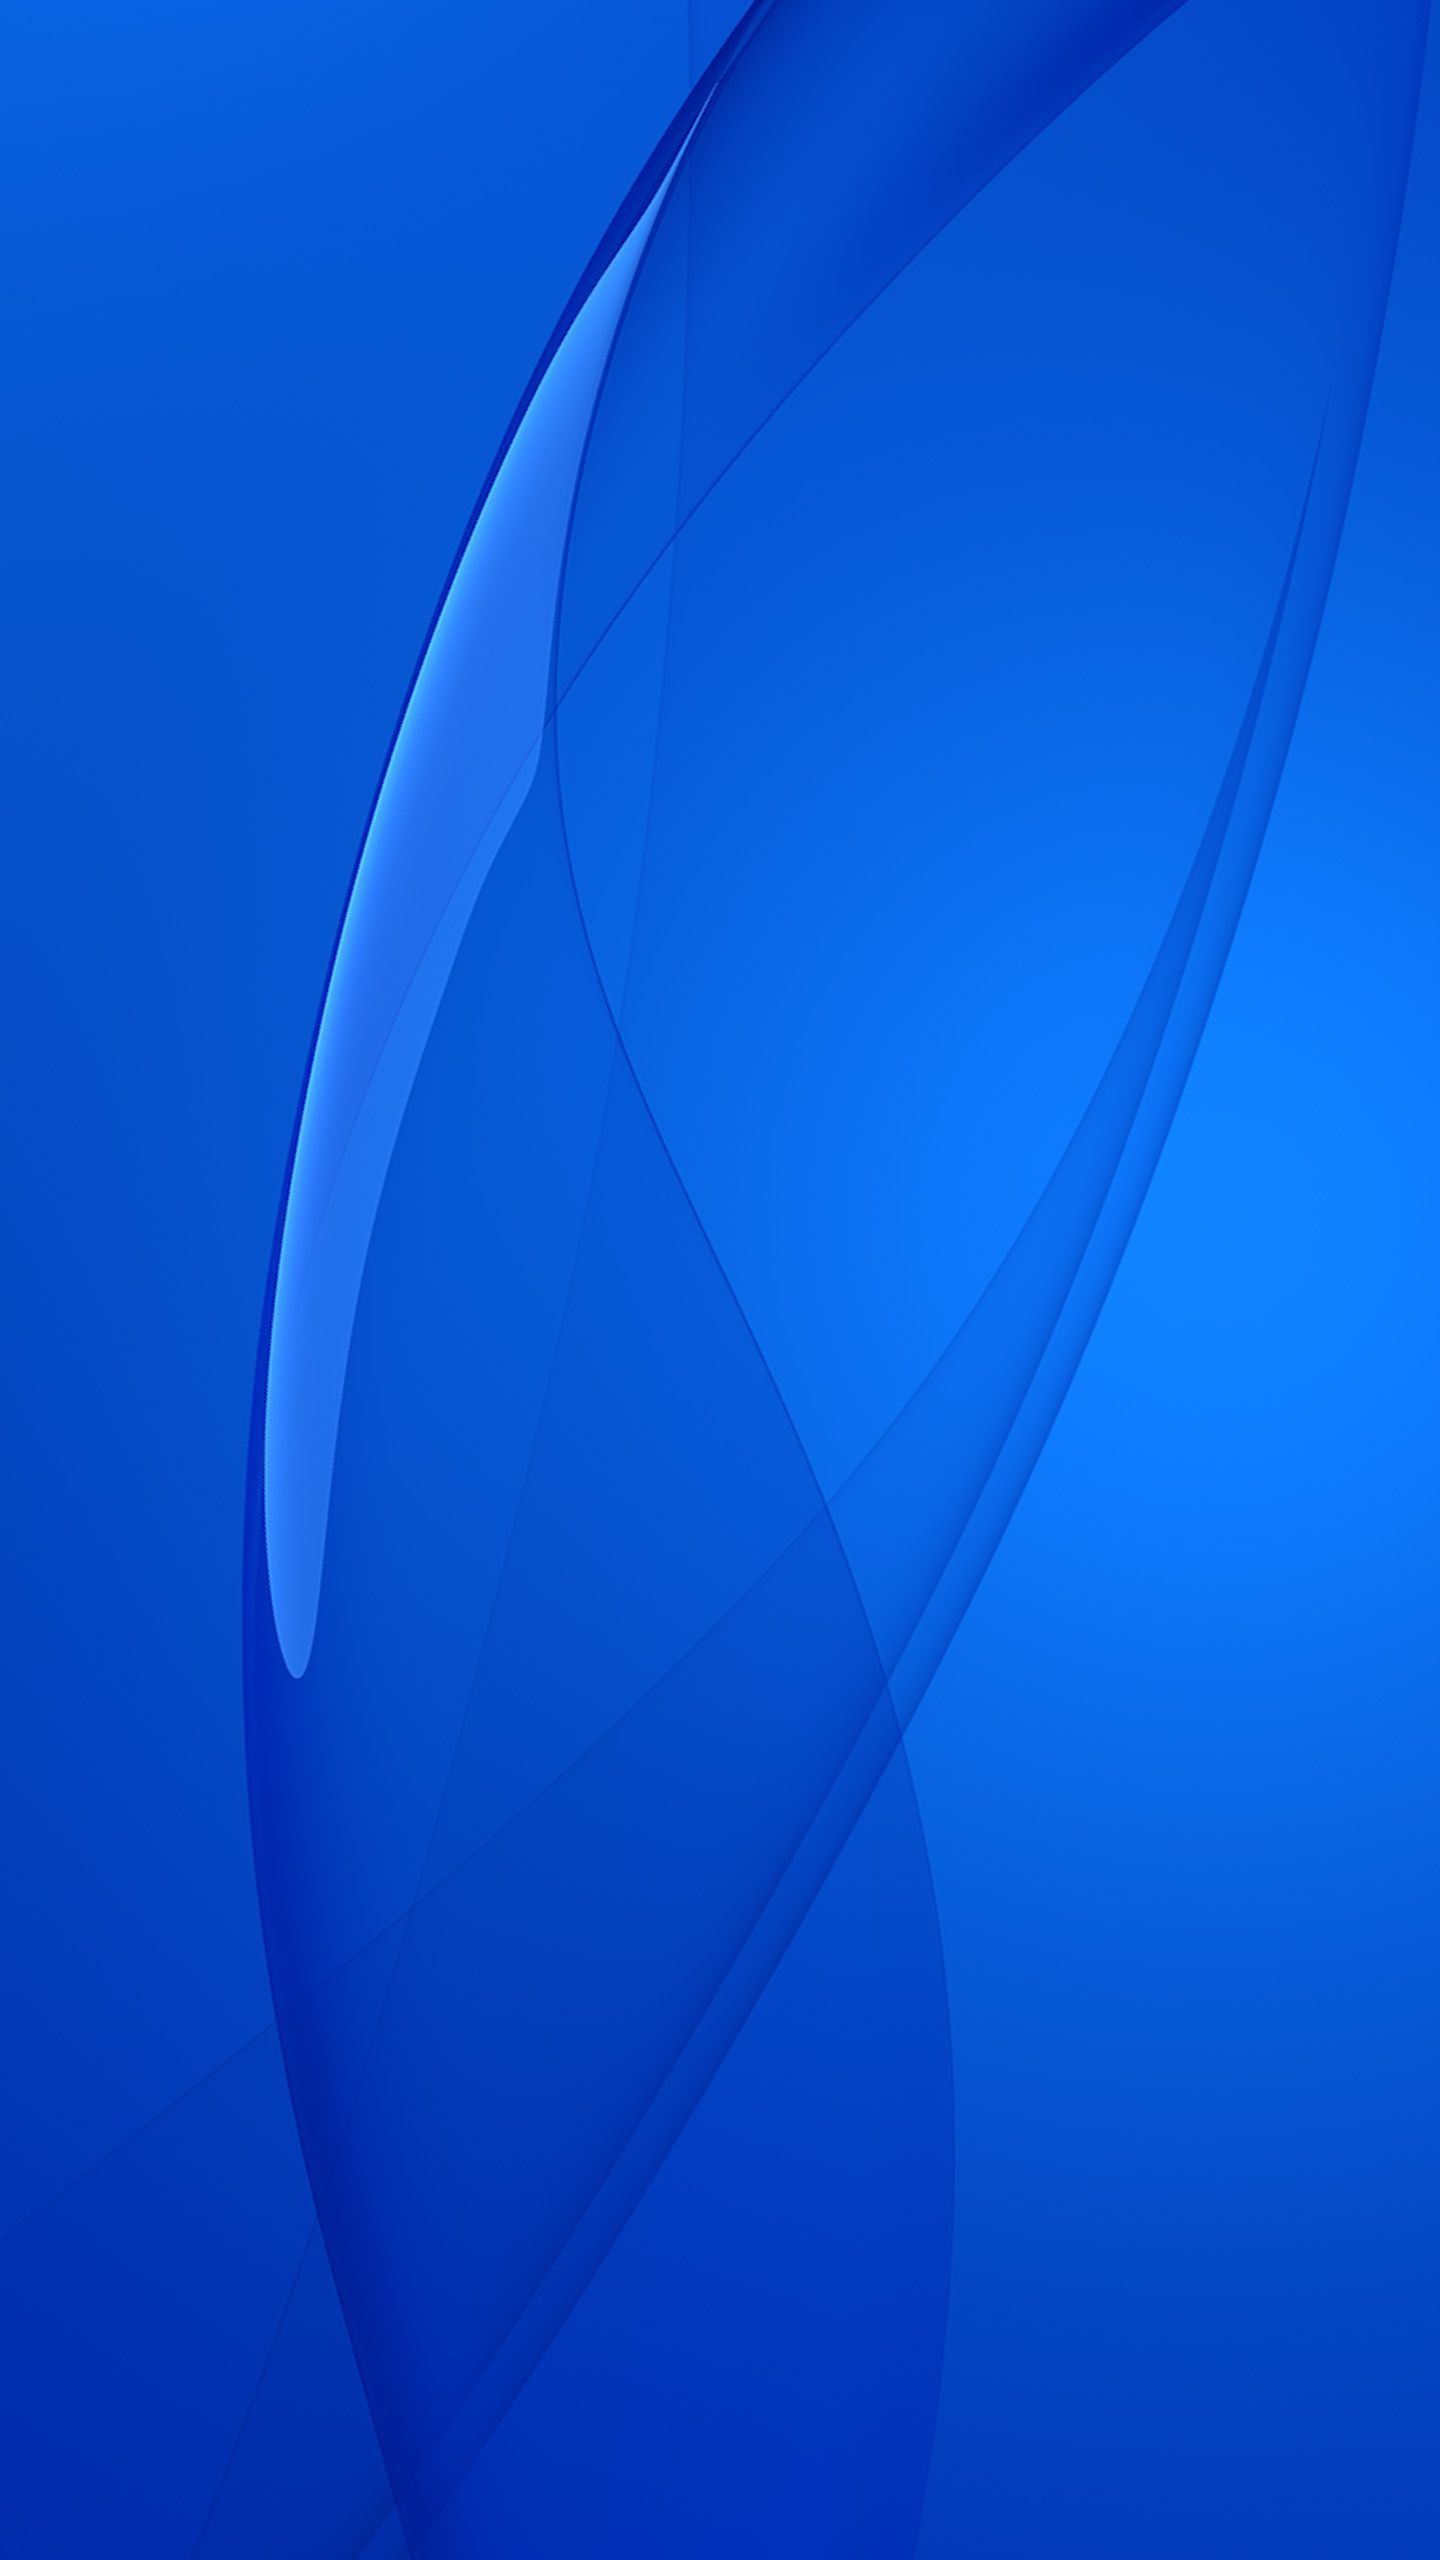 blue abstract mobile phone wallpaper http://wallpapers-and